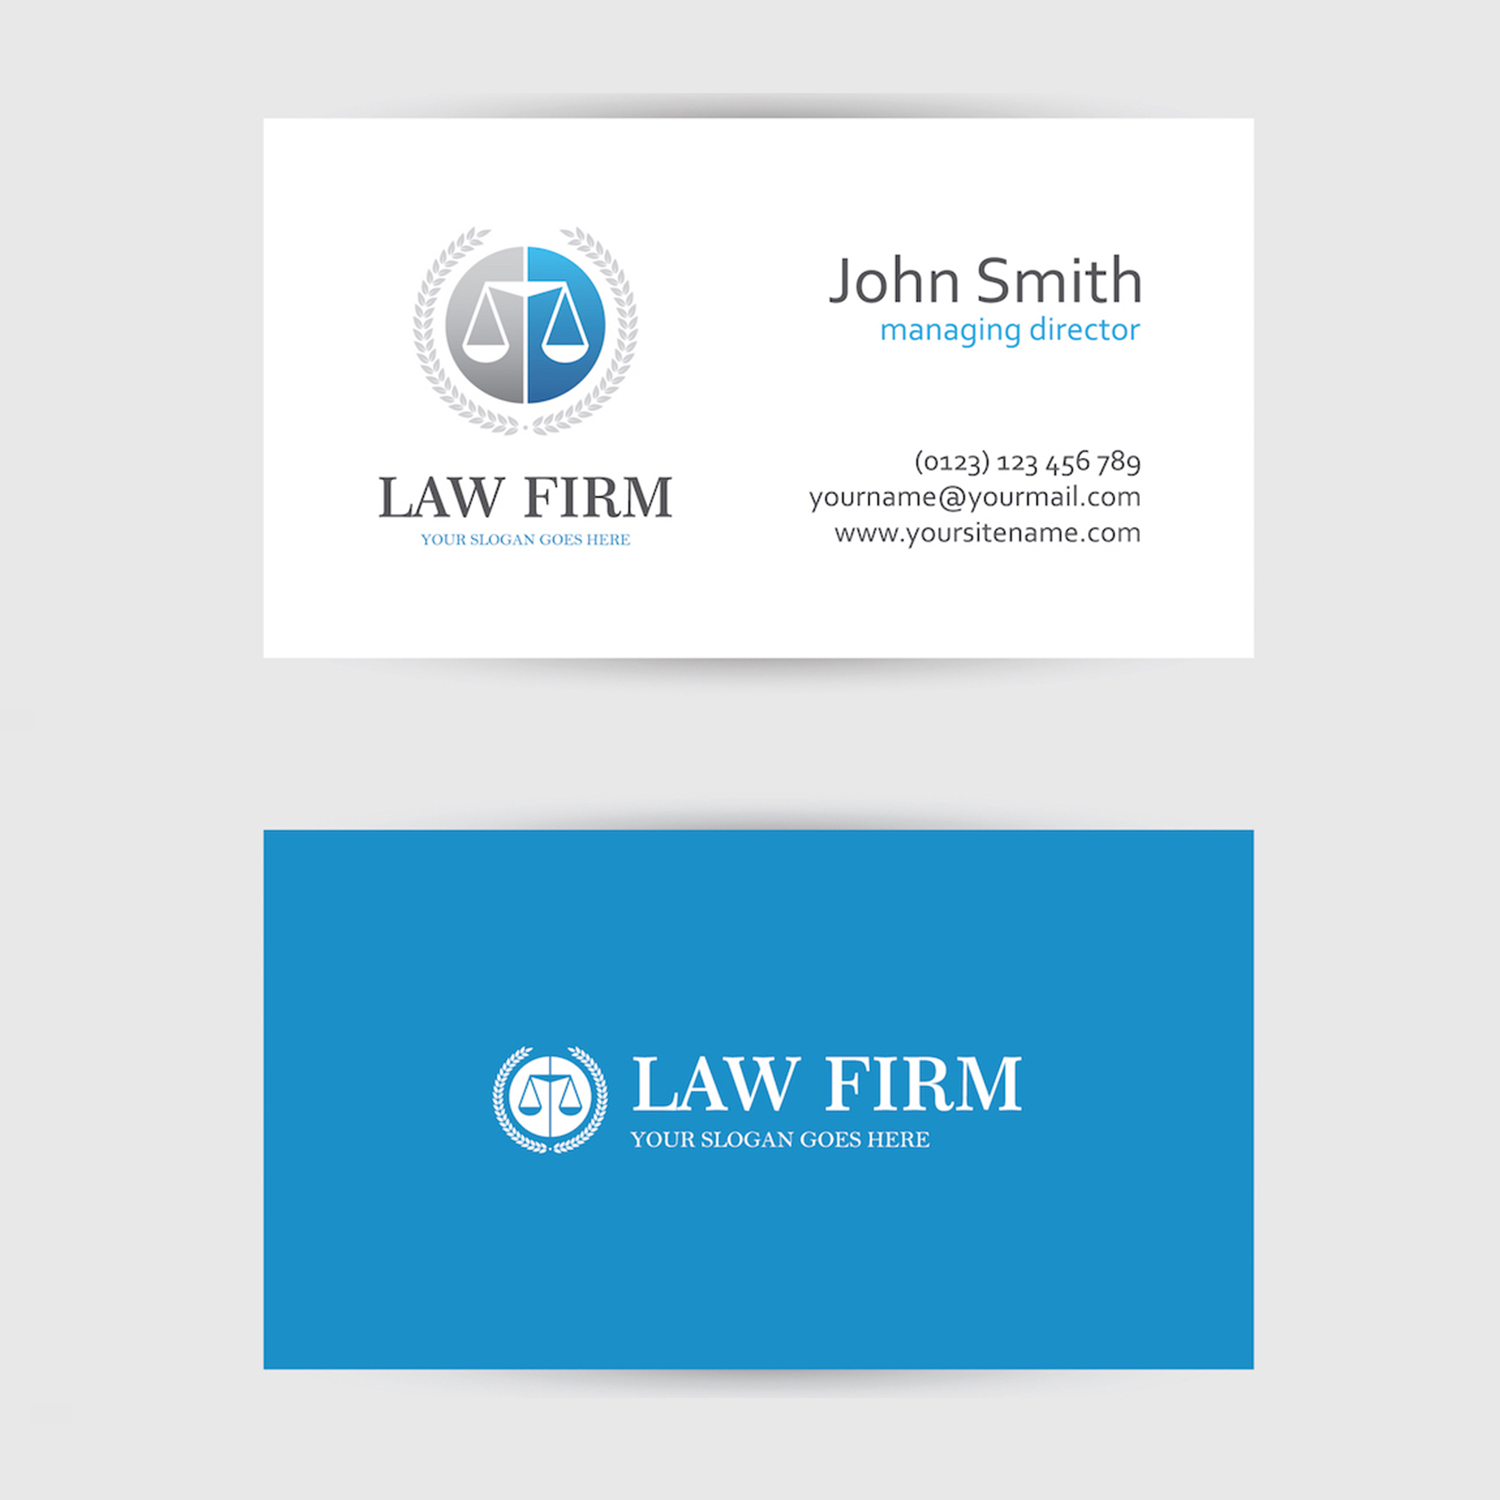 Law firm business card design branding los angeles law firm business card design colourmoves